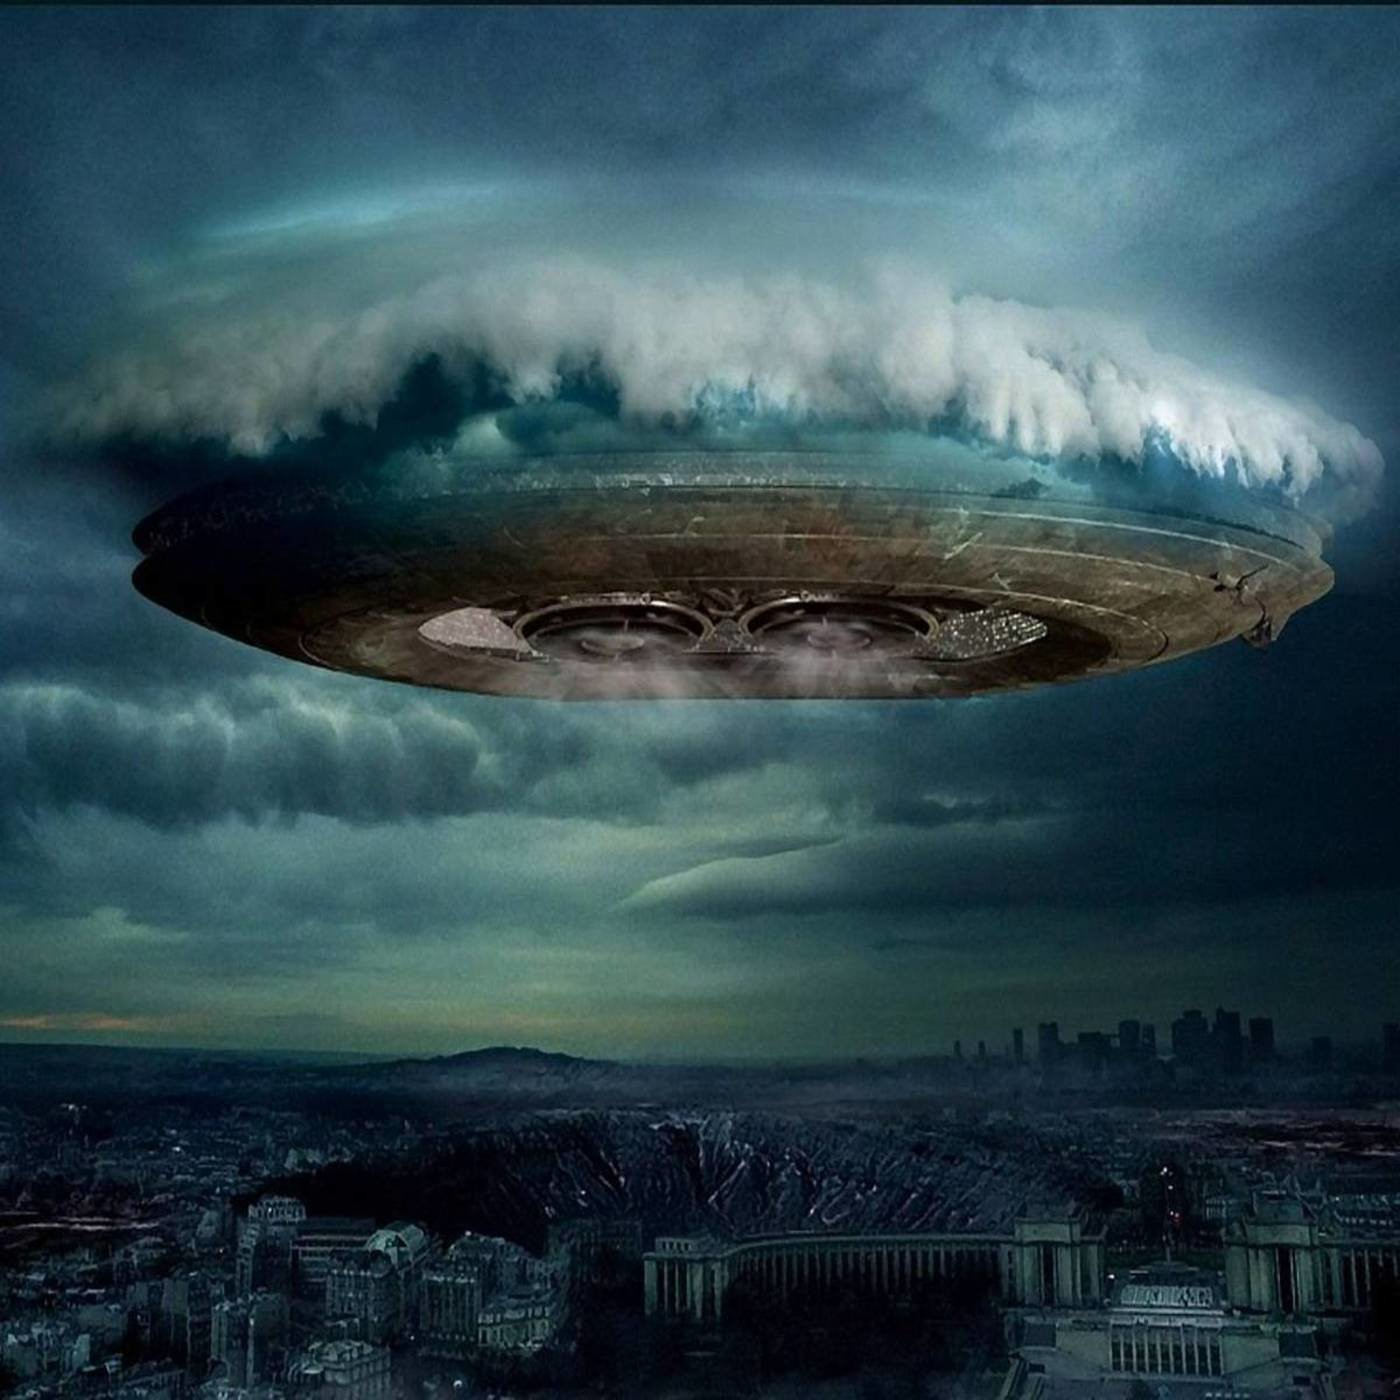 the effects of extra terrestrial sightings in united states Here are 20 of the world's most famous ufo sightings, including roswell, rendlesham forest, the hill one of the uk's most famous ufo events involved the sighting of several unexplained lights near raf however, official reports eschewed the idea of an extra-terrestrial mystery, deeming the.